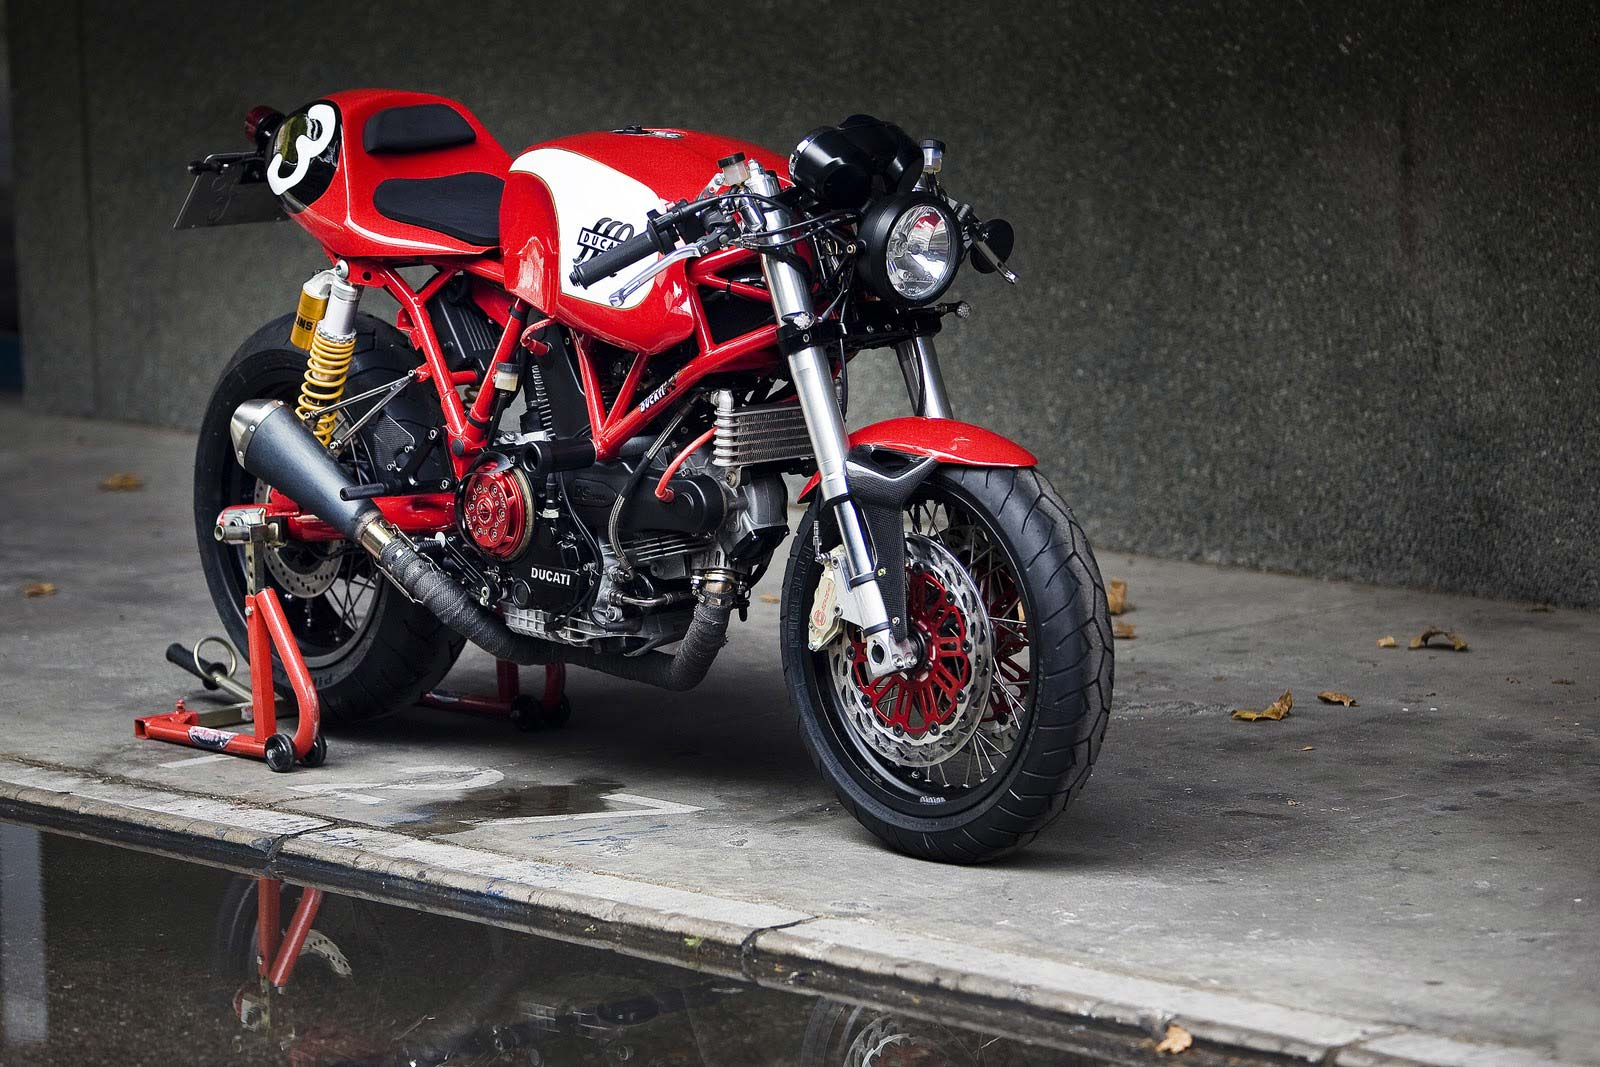 Racer, Oldies, naked ... TOPIC n°2 - Page 6 Radical-ducati-cafe-veloce-1